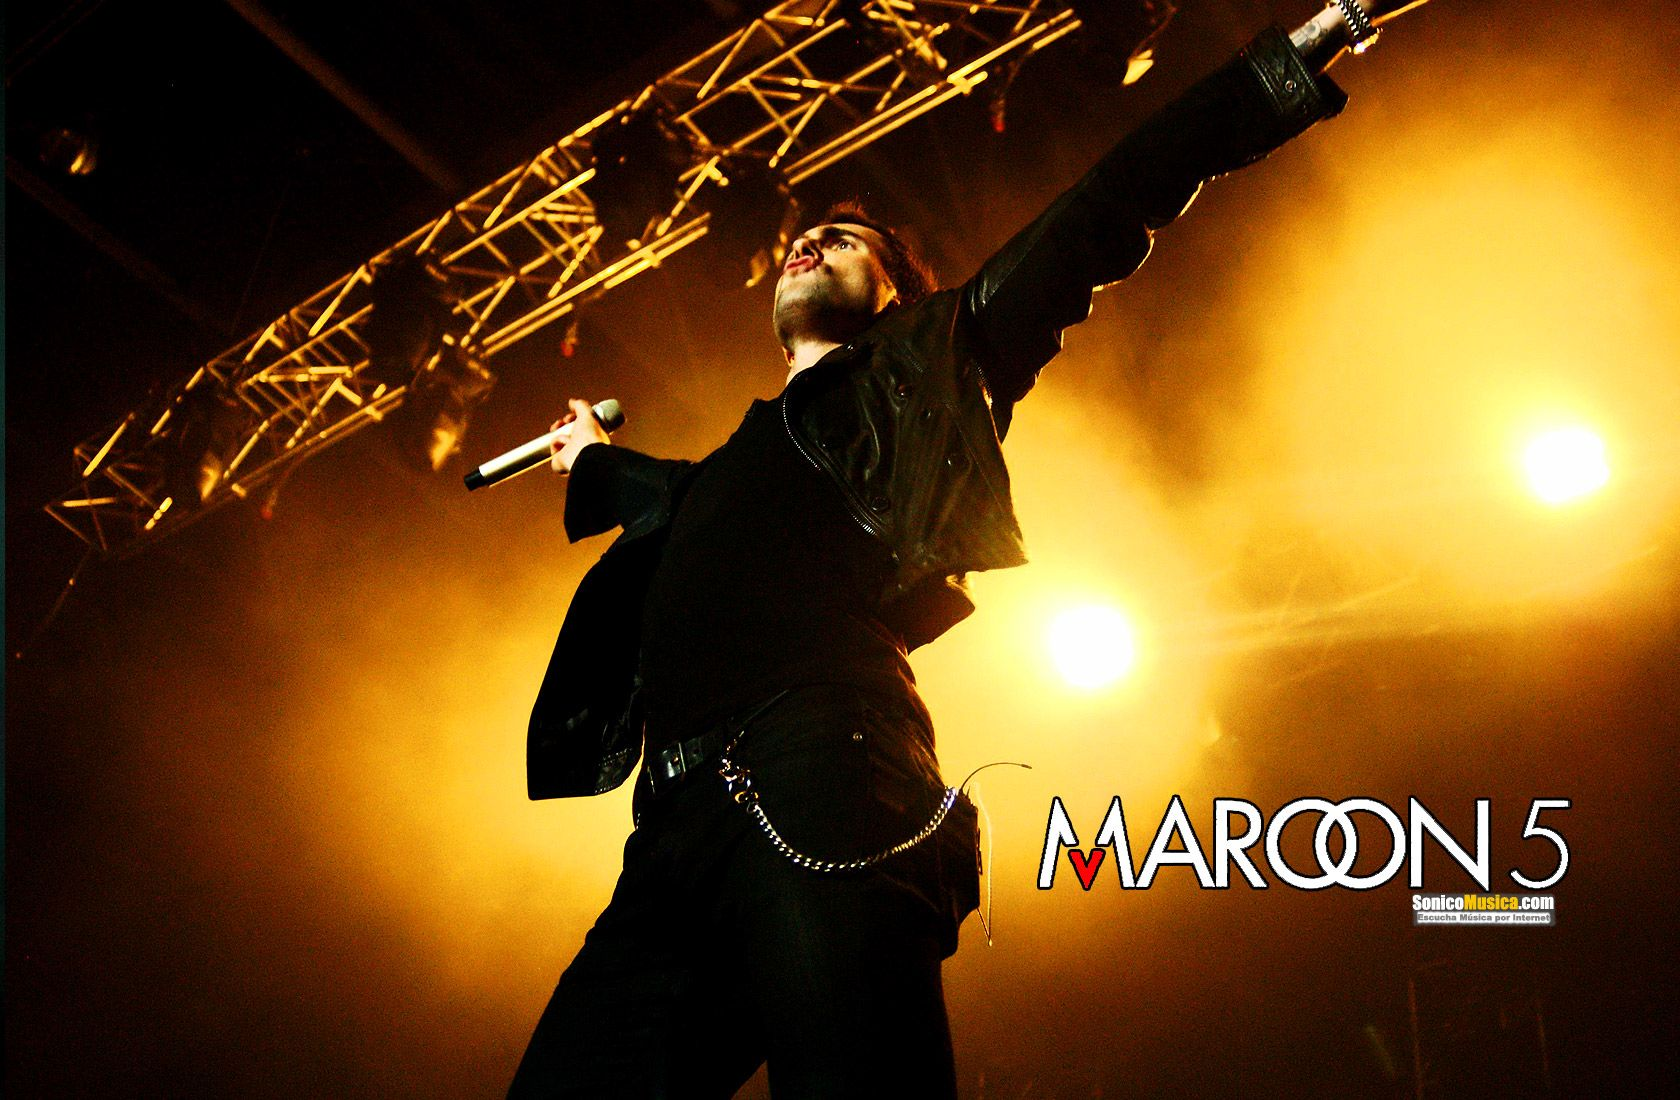 background maroon 5